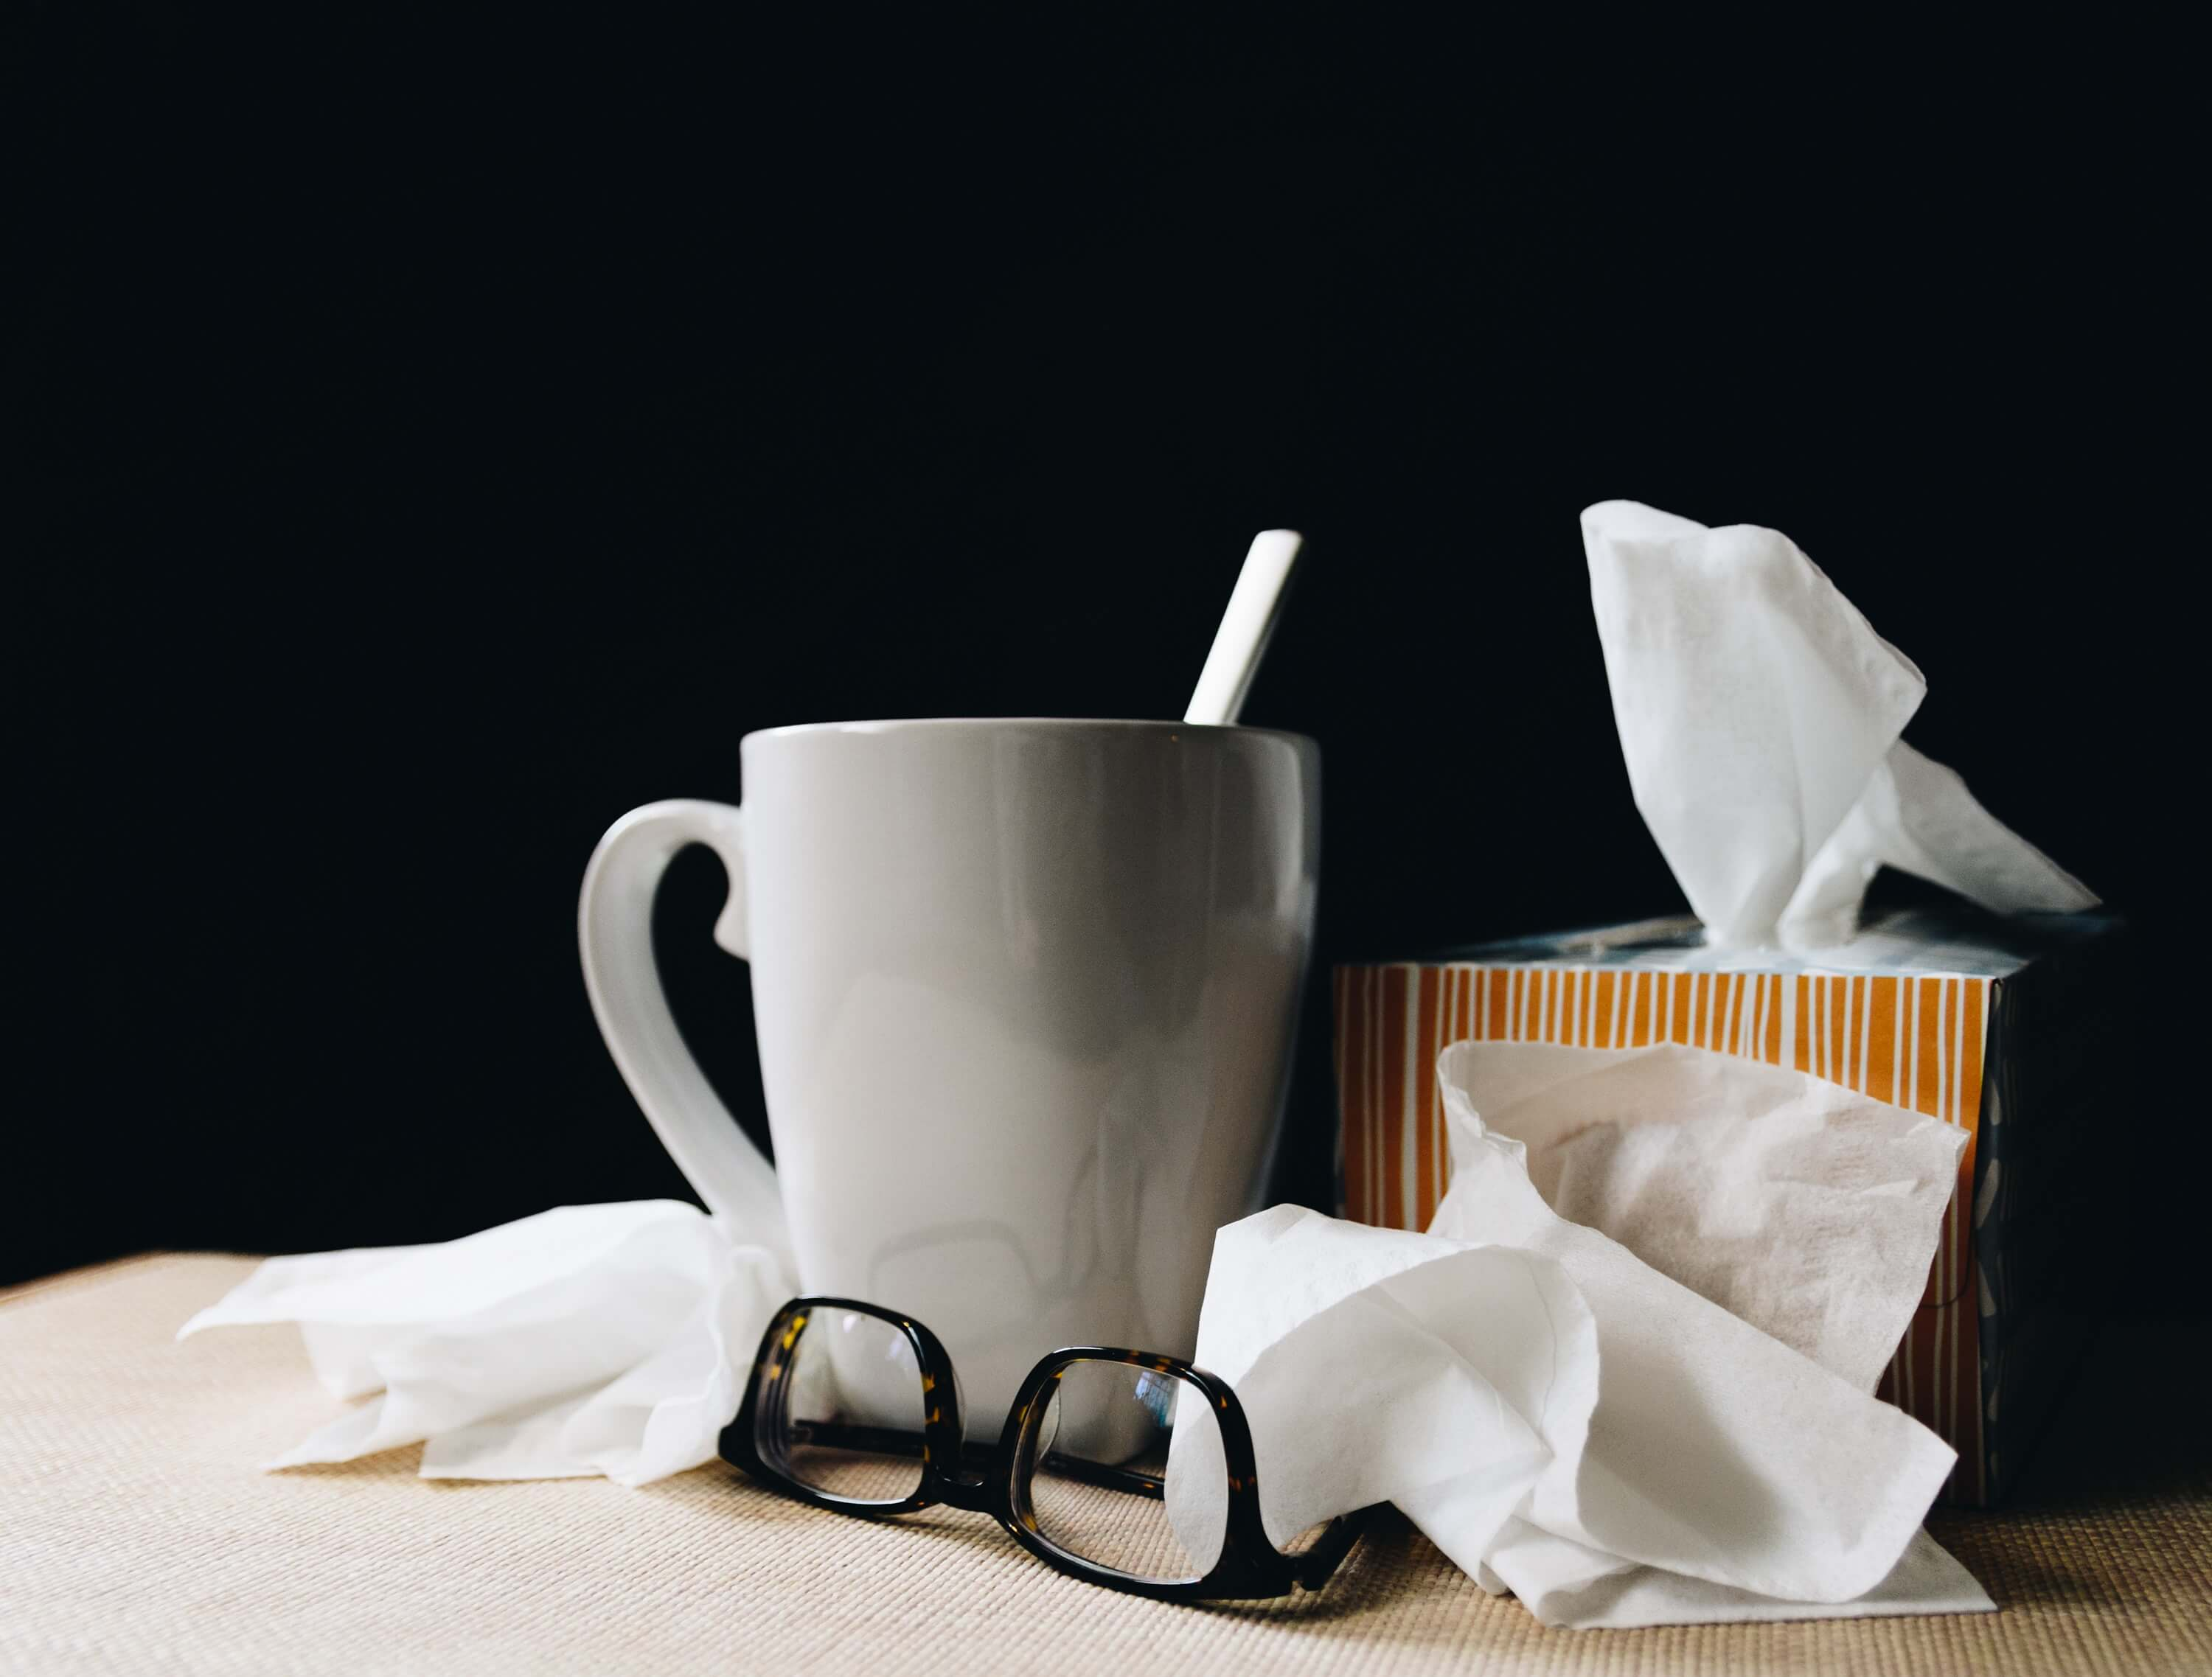 Tissue box, hot drink and glasses